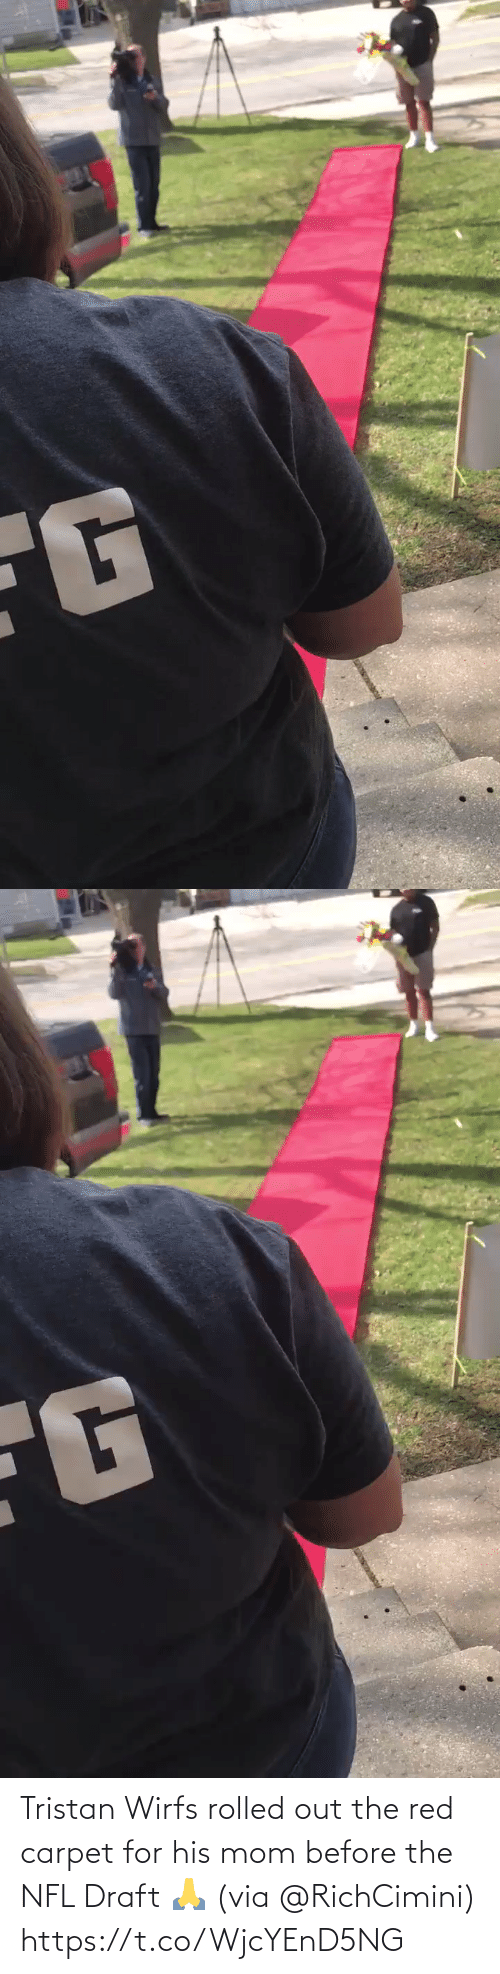 NFL draft: Tristan Wirfs rolled out the red carpet for his mom before the NFL Draft 🙏 (via @RichCimini) https://t.co/WjcYEnD5NG